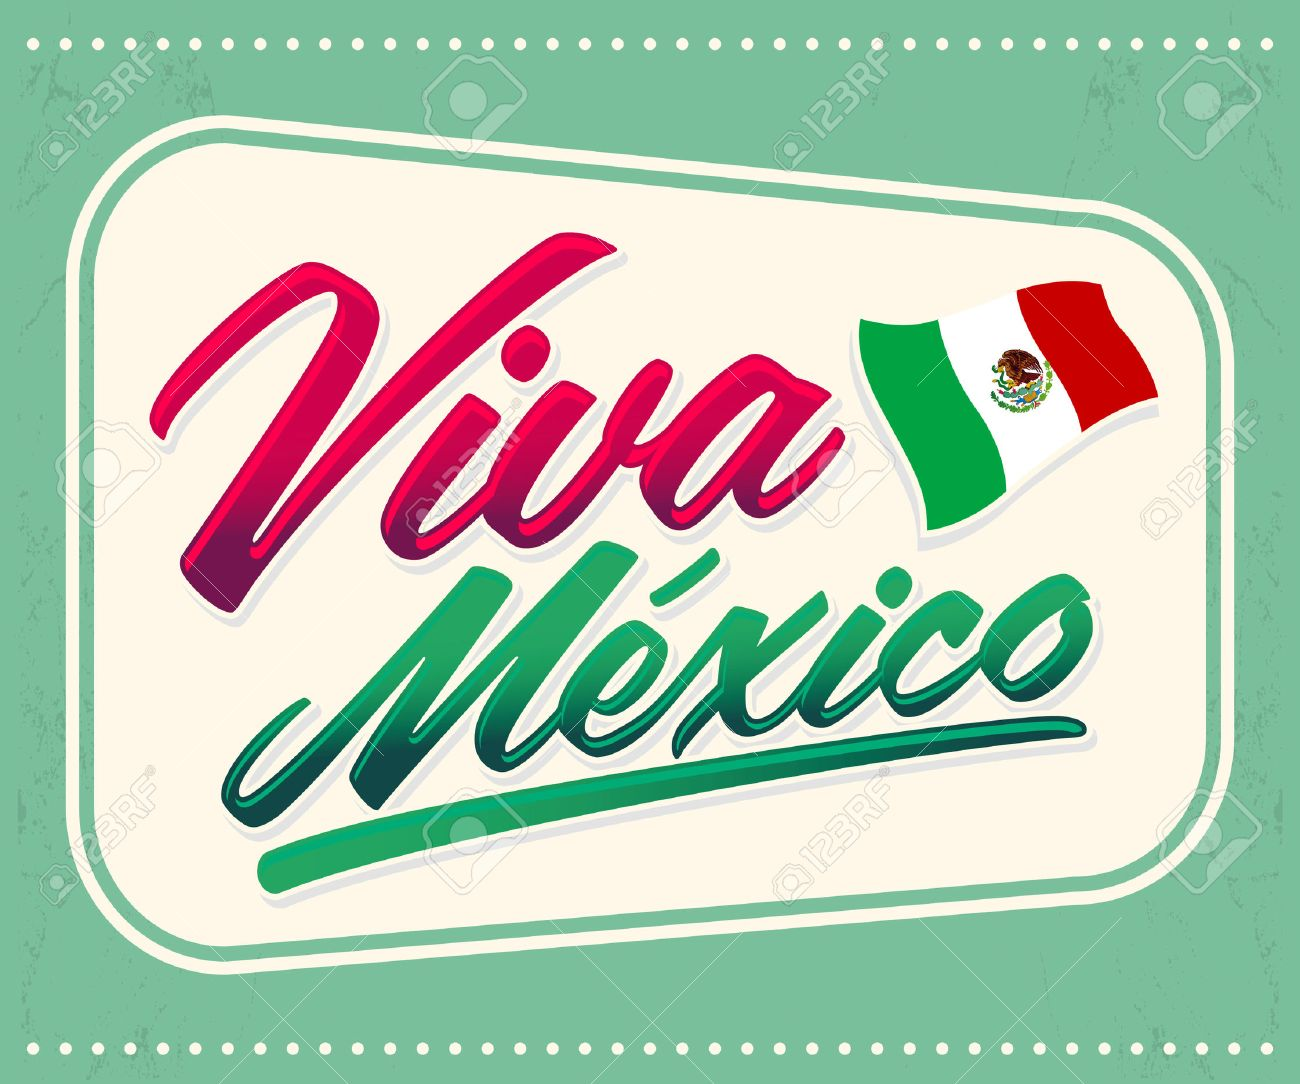 Viva Mexico - mexican holiday lettering - icon emblem vector decoration - 44296277